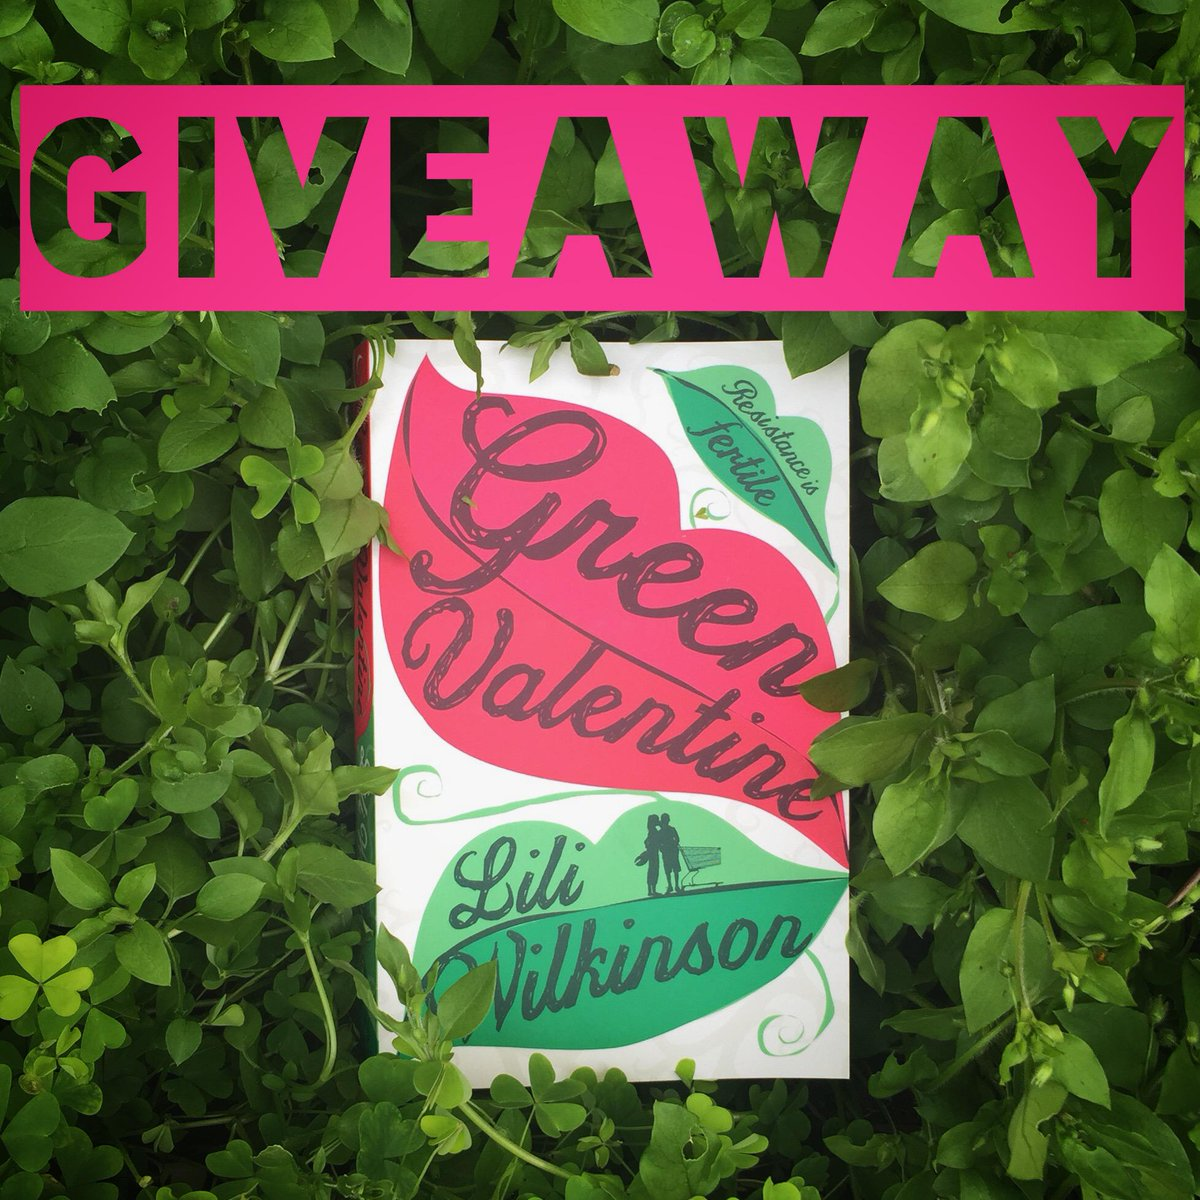 Retweet and follow me to win a signed copy of #GreenValentine! http://t.co/ljJh00Gyyx